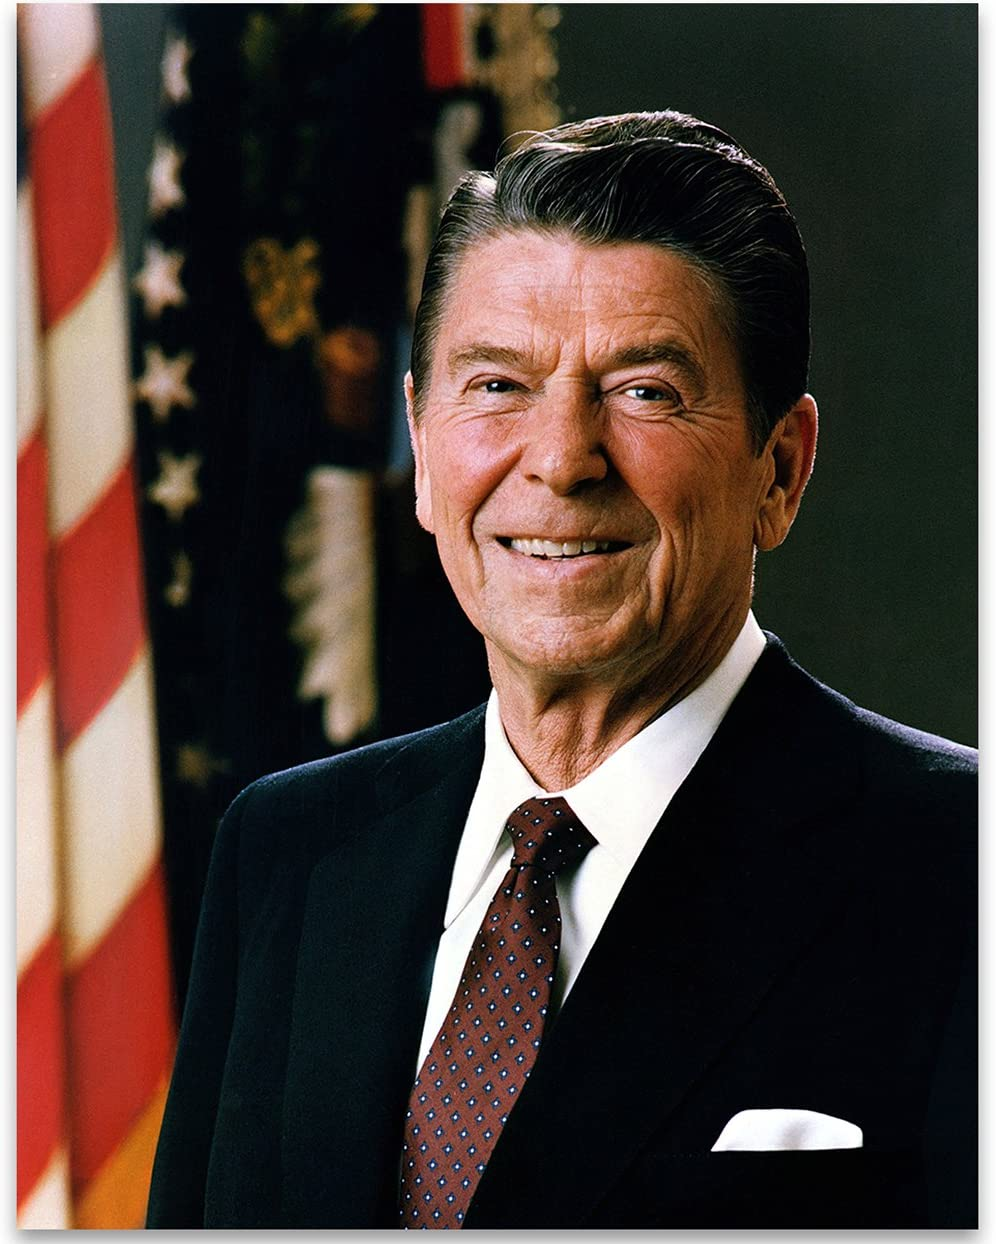 President Ronald Reagan Photograph - Official Portrait - 11x14 Unframed Art Print Picture - Great and Decor Under $15